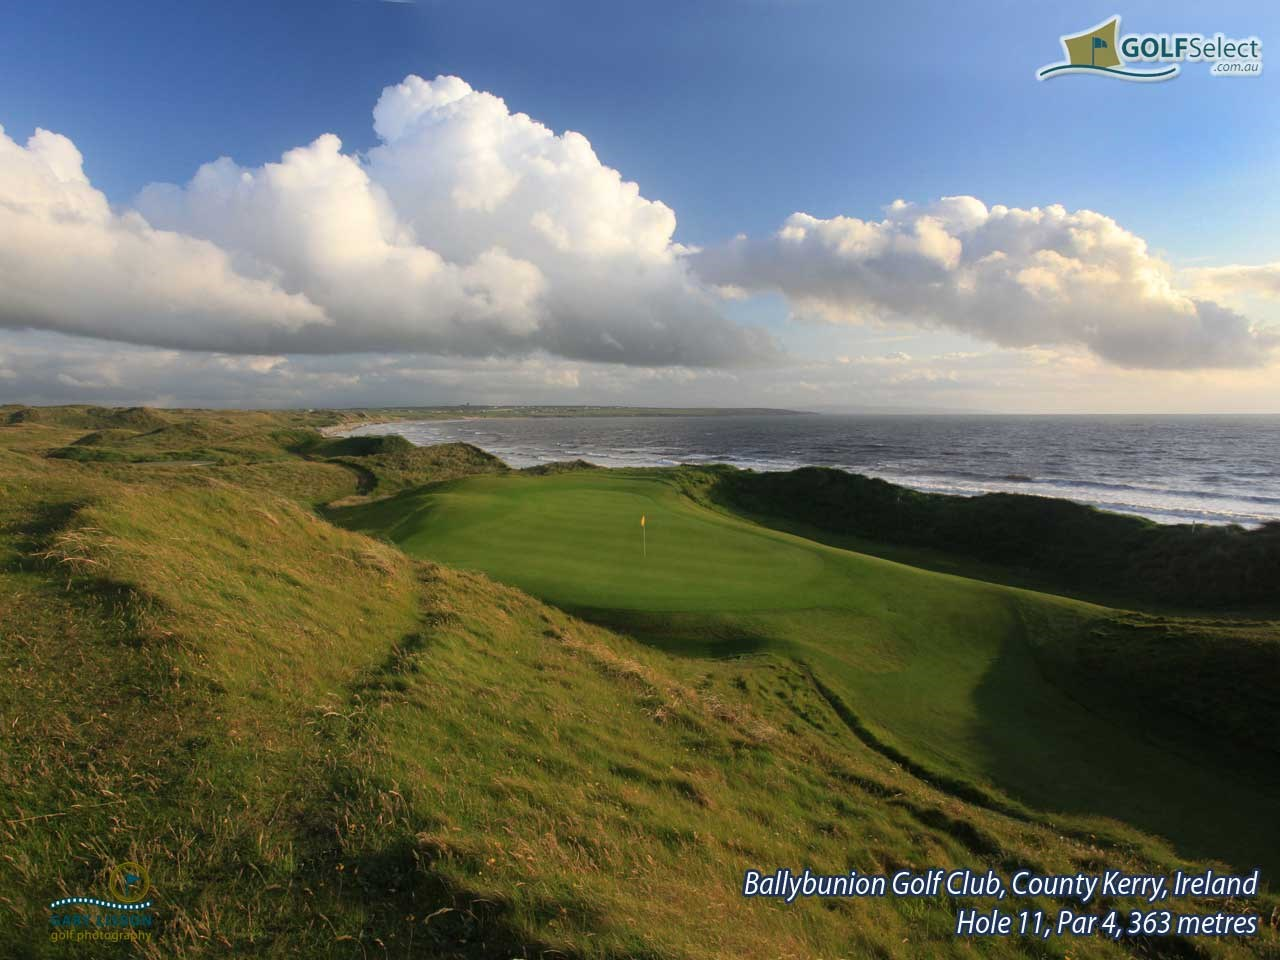 golfselect golf wallpaper ballybunion golf club old course hole 11 old par 4 363 metres. Black Bedroom Furniture Sets. Home Design Ideas